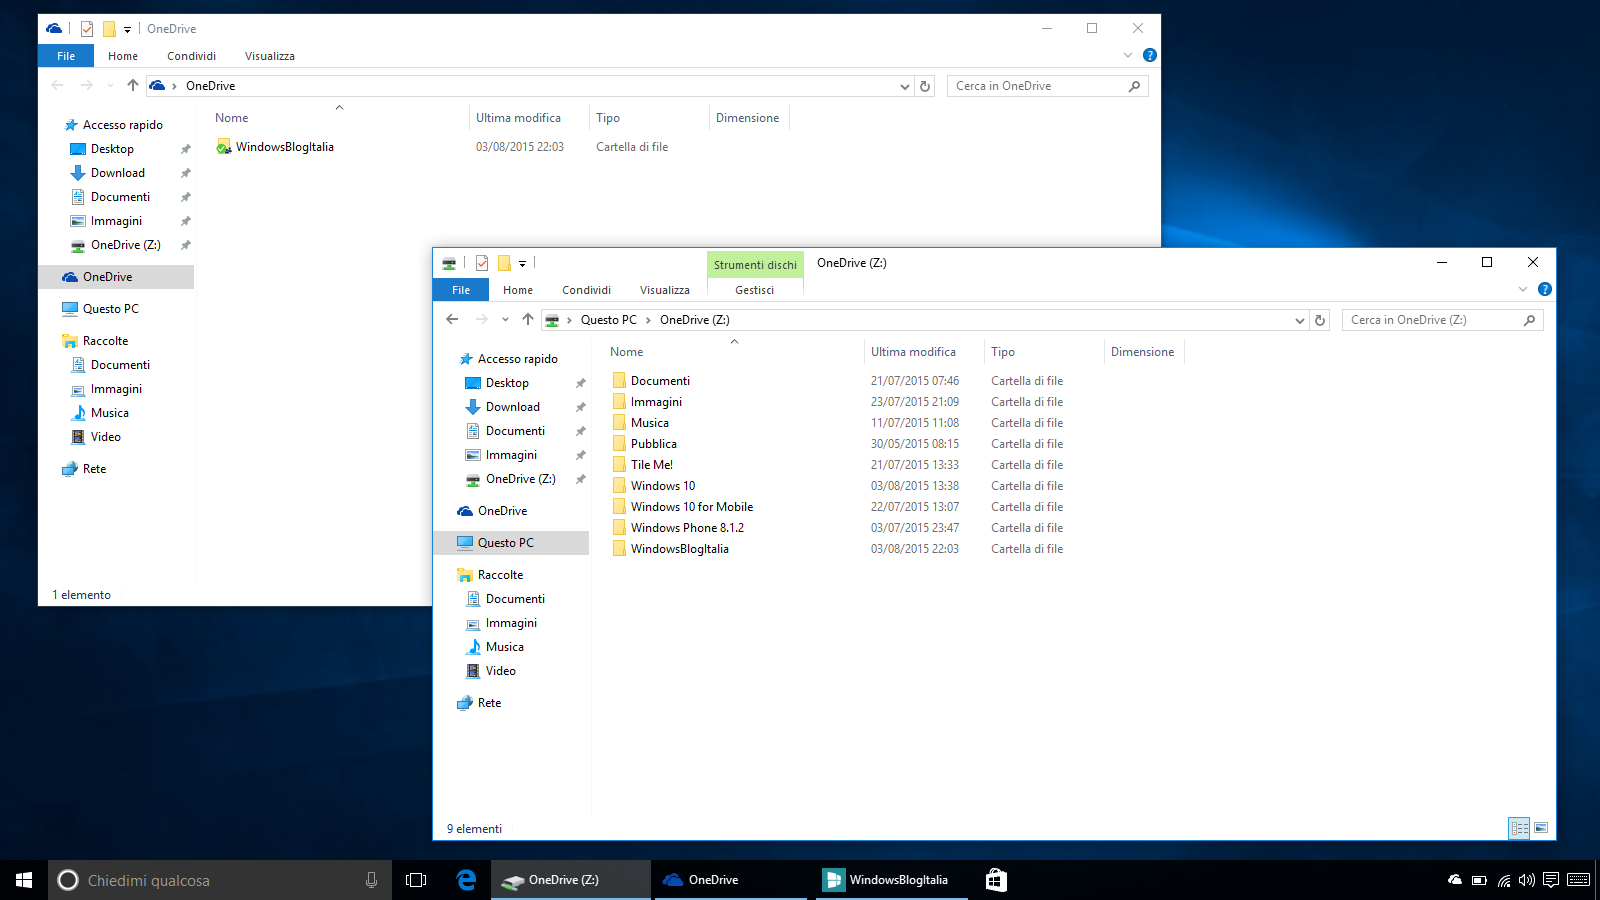 OneDriveWindows10placeholders